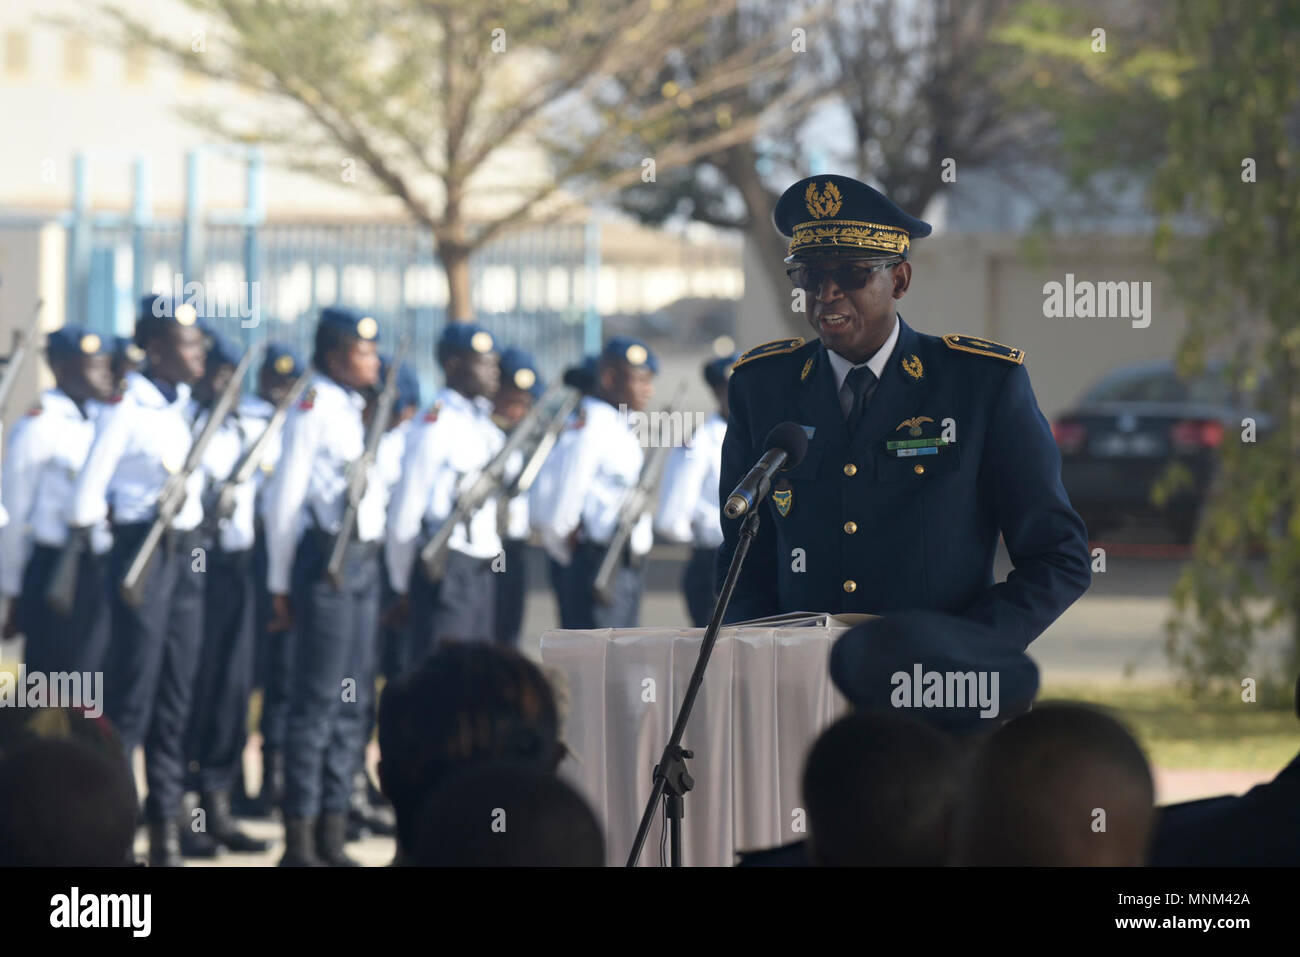 Senegalese Brig. Gen. Joseph Diop, Senegal air force Chief of Staff, speaks during the opening ceremony of African Partnership Flight Senegal at Captain Andalla Cissé Air Base, Senegal, March 19, 2018. The purpose of APF Senegal is to conduct multilateral, military-to-military engagements and security assistance with African air forces. - Stock Image